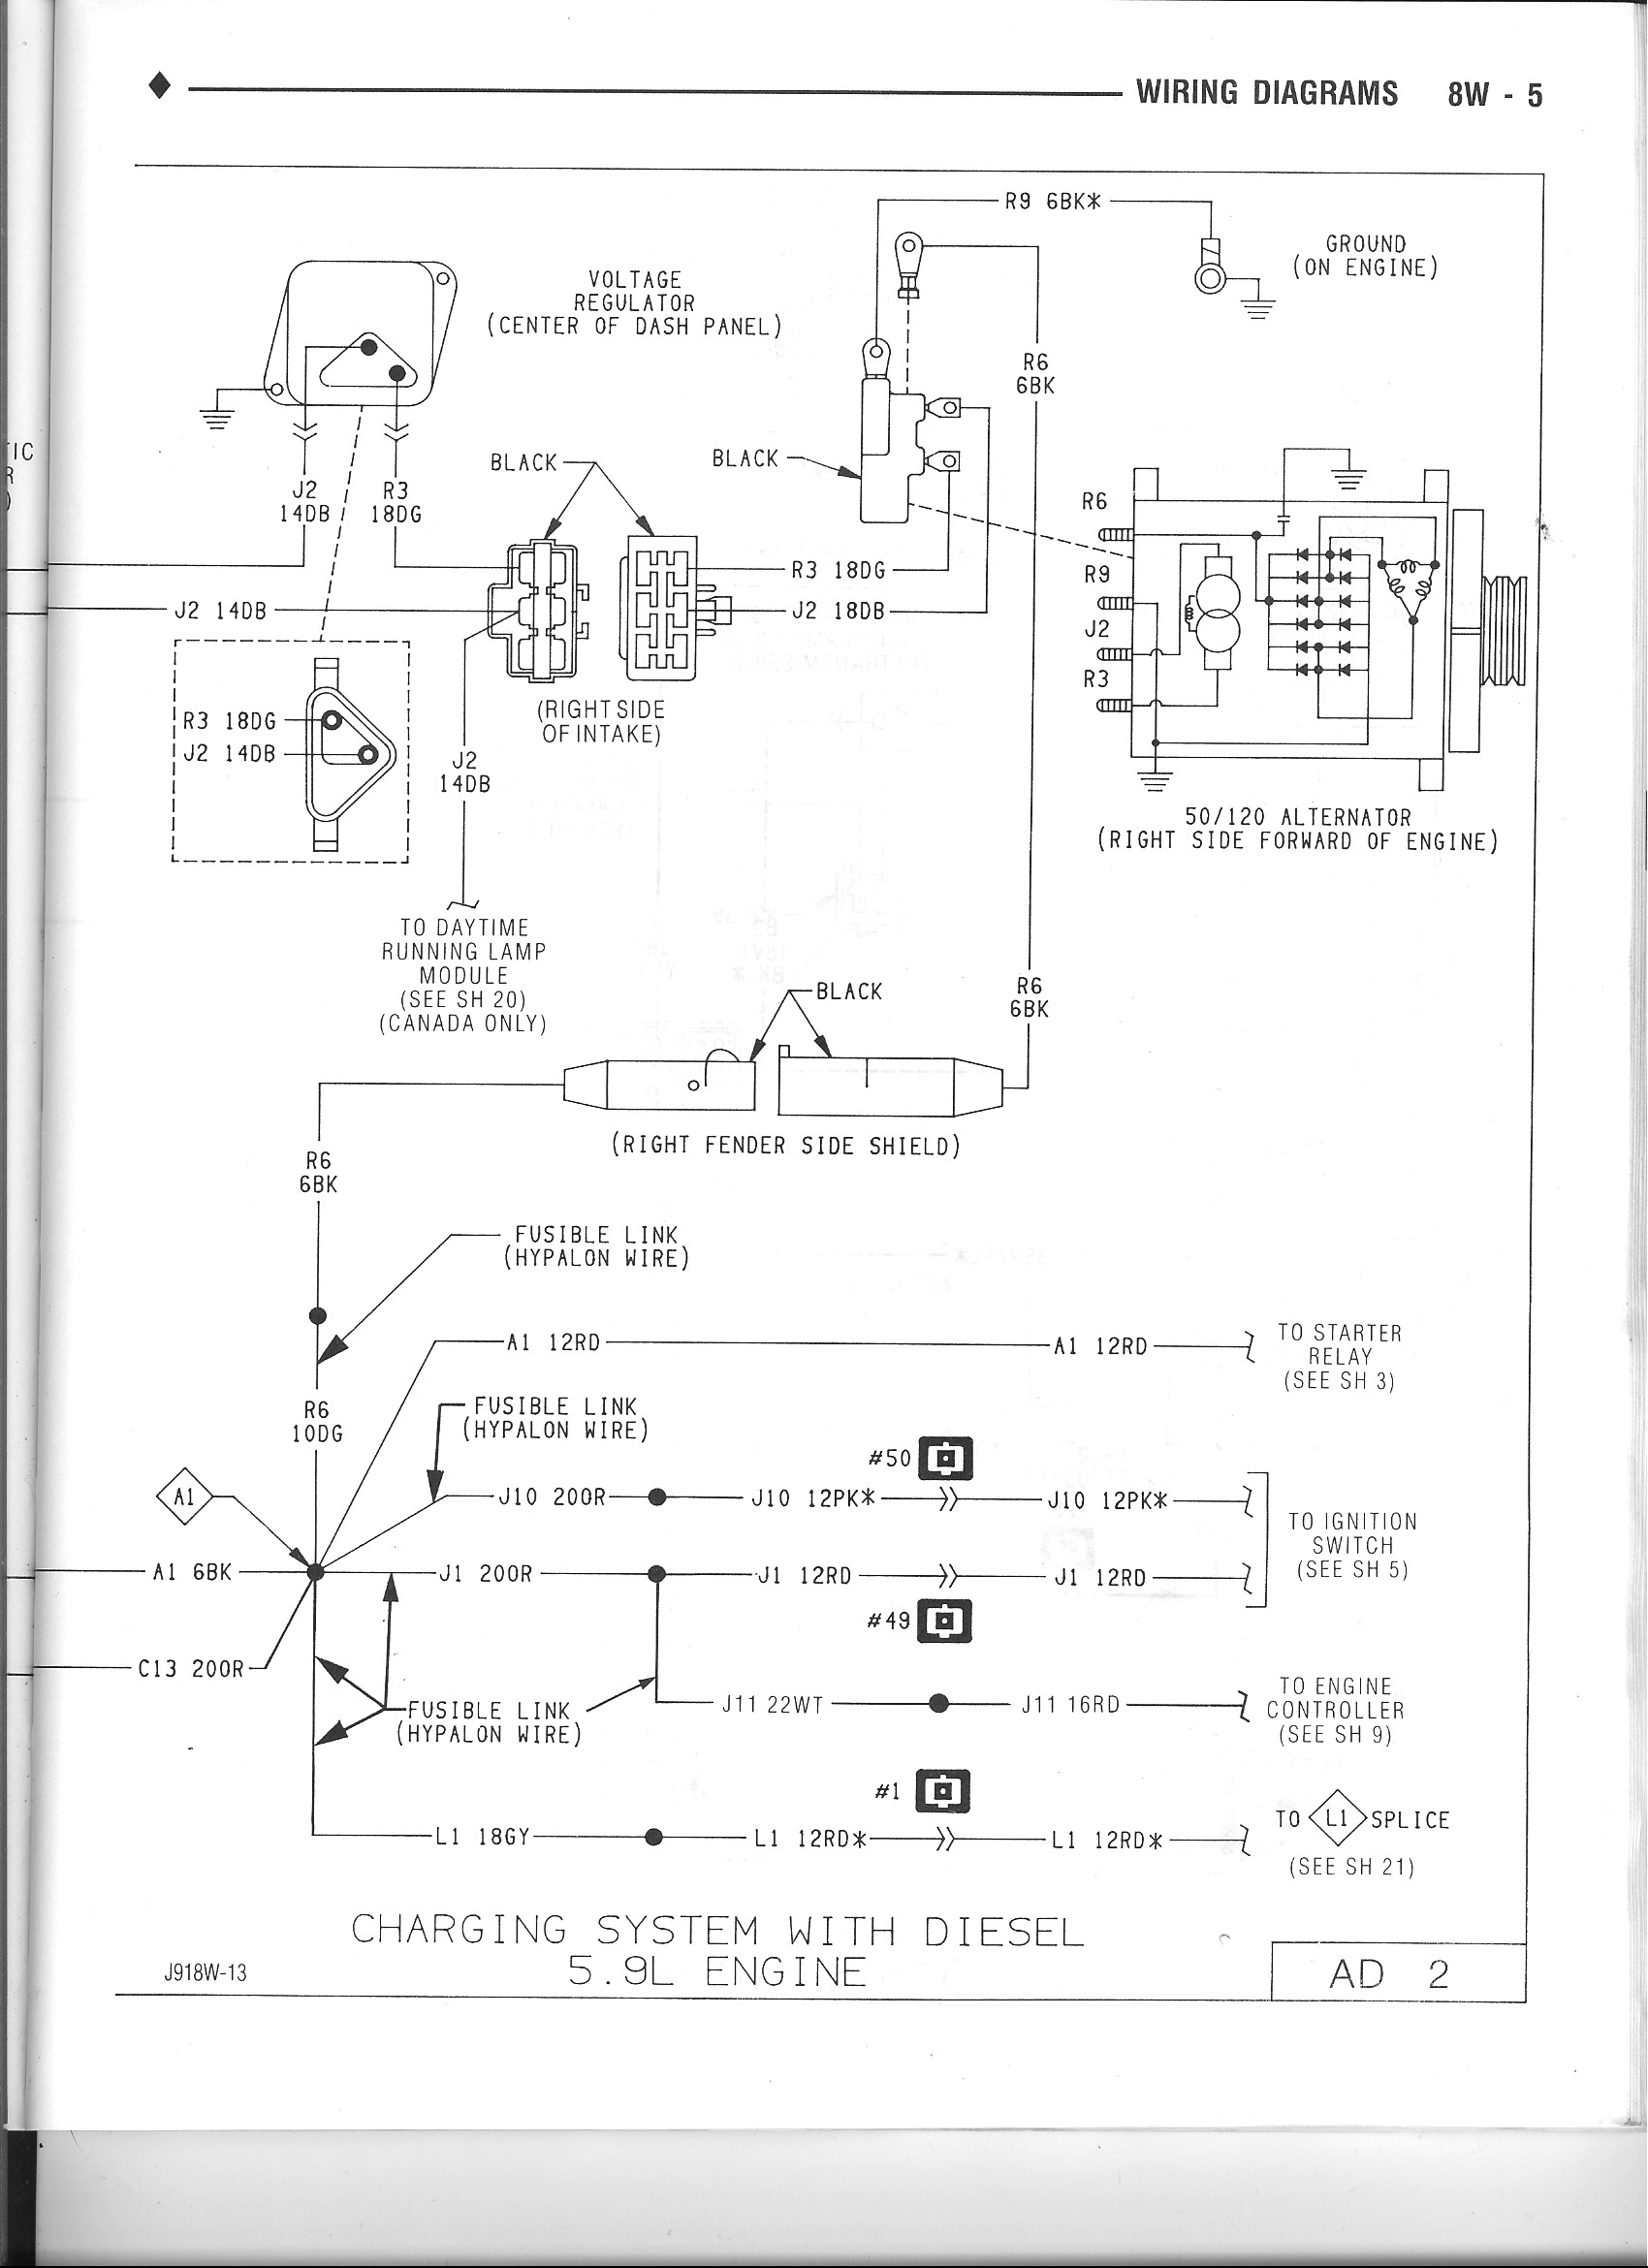 Wiring Diagram 1990 Dodge 150 Library Ram Alternator 1983 D150 Download Diagrams U2022 1985 Power Lifted